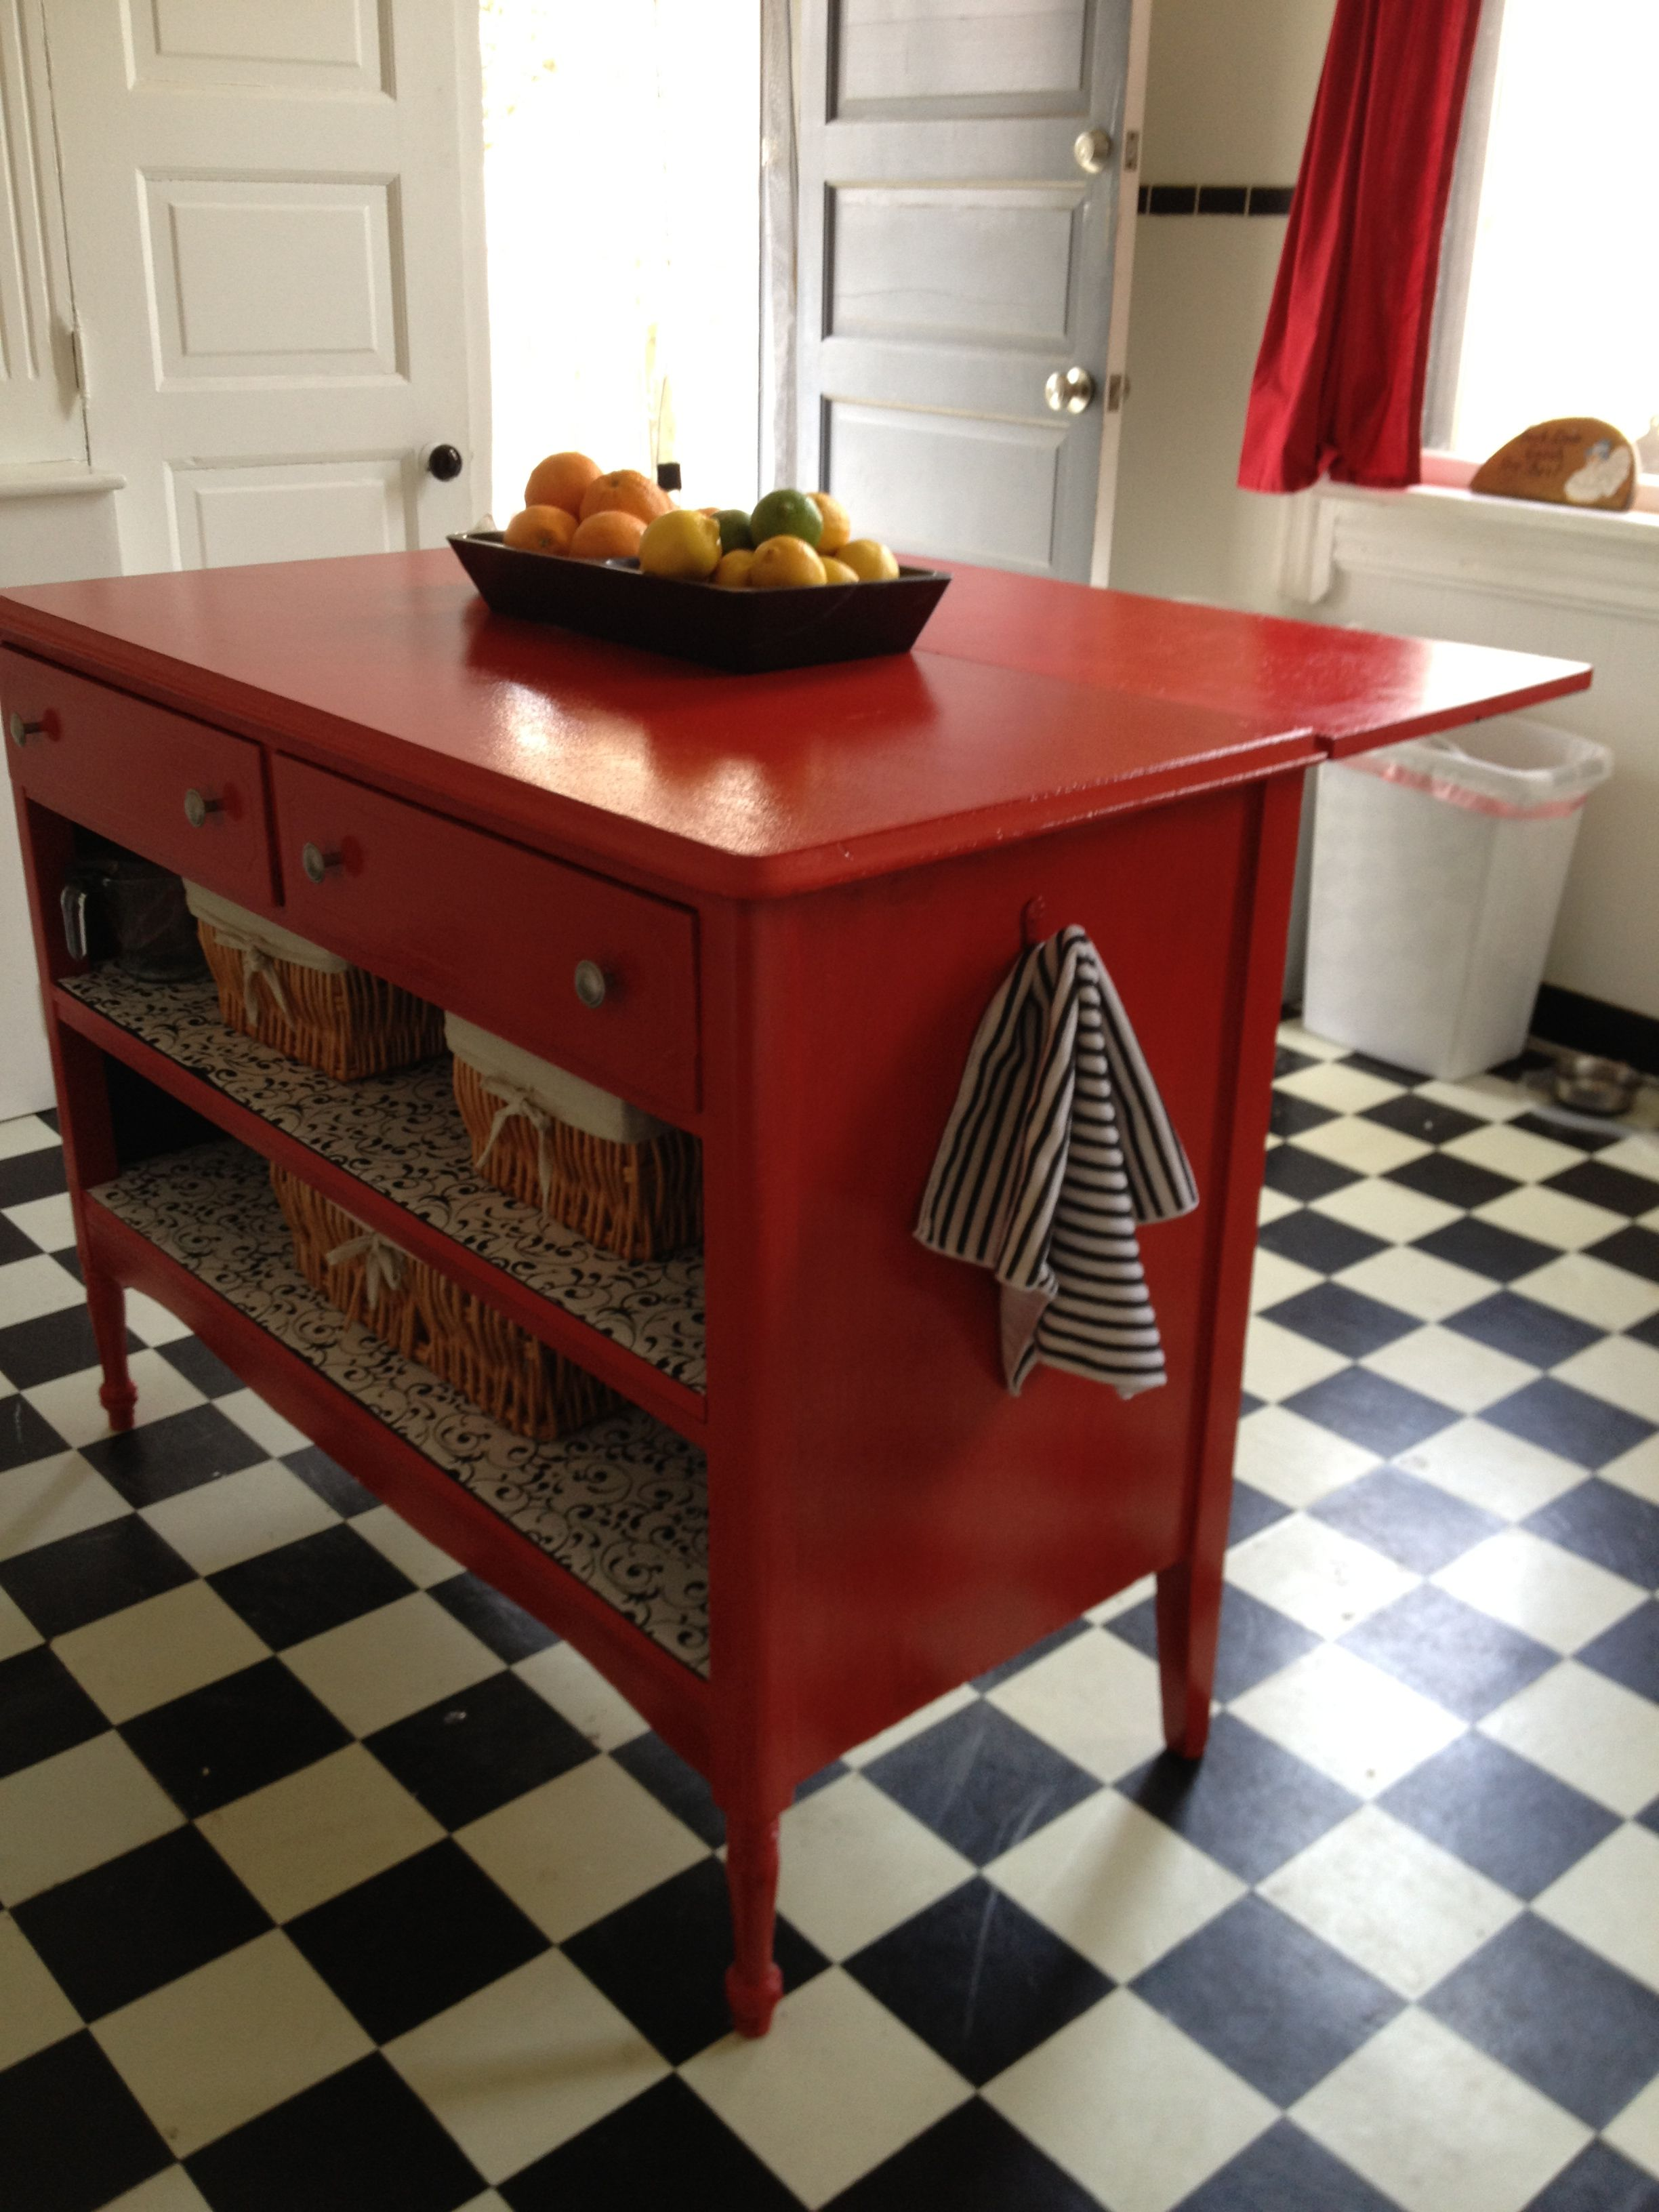 How To Build A Kitchen Island From A Dresser